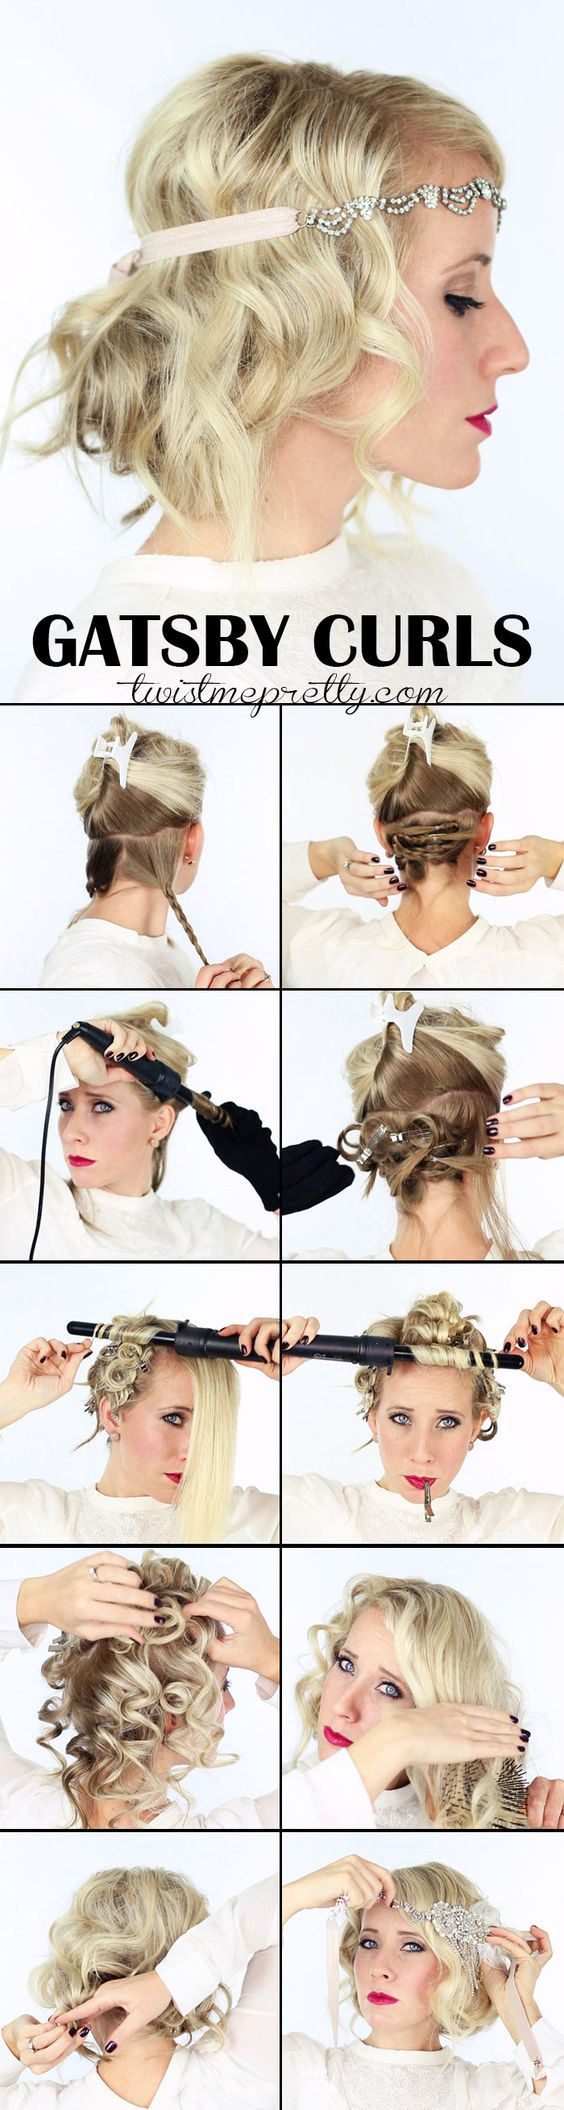 2 Gorgeous Gatsby Hairstyles For Halloween Or A Wedding Twist Me Pretty Vintage Wedding Hair Hair Styles Vintage Hairstyles